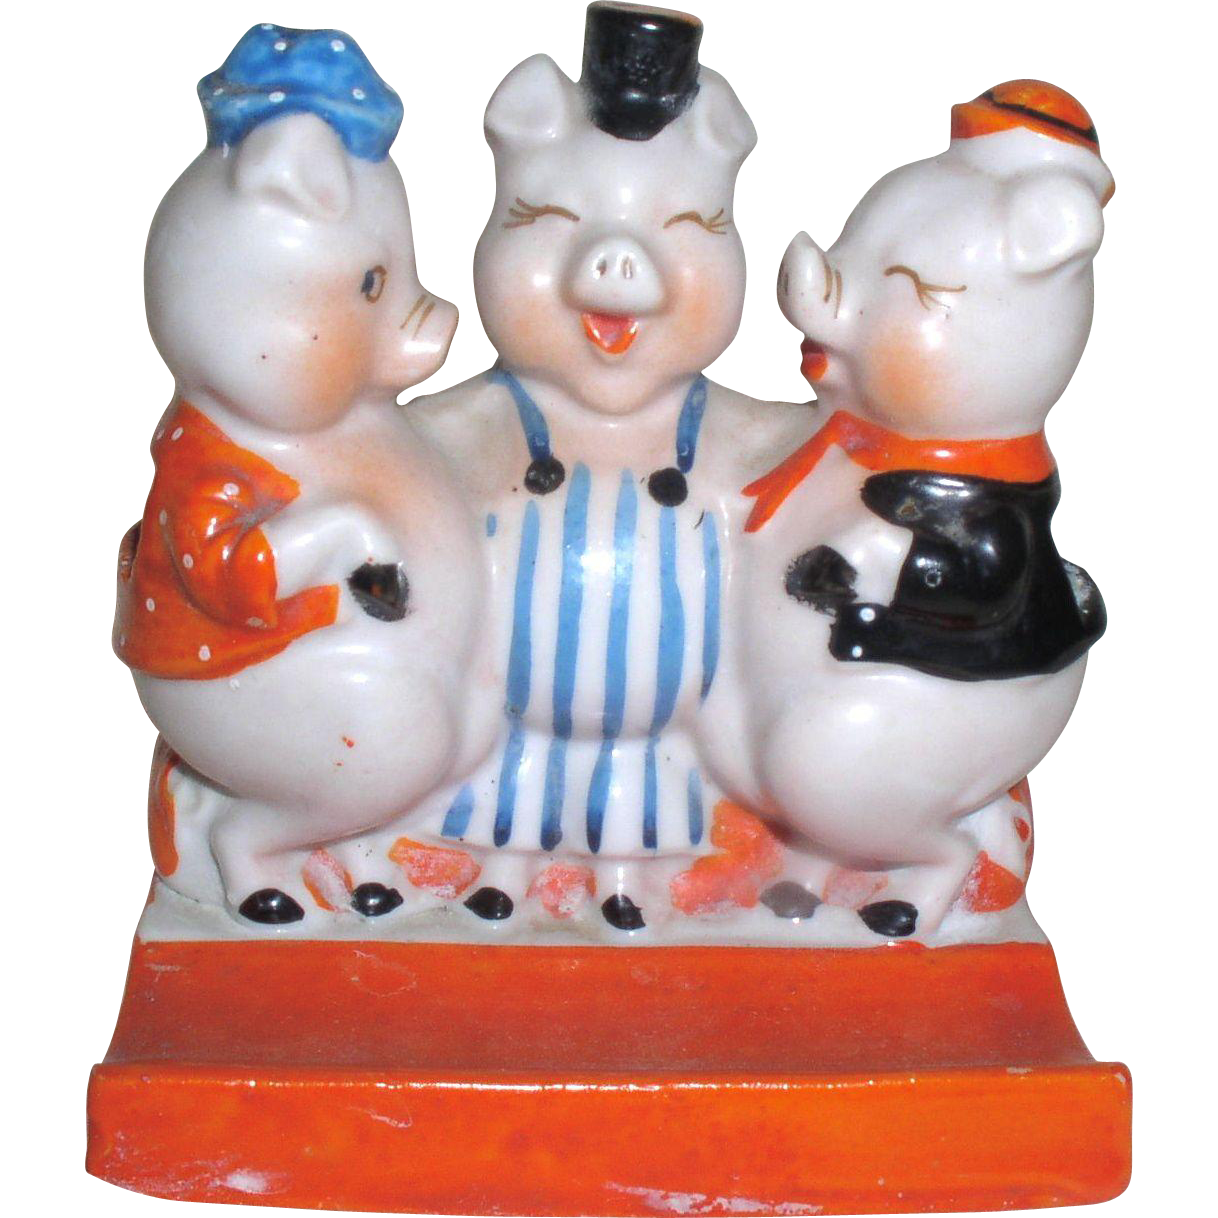 Vintage-Ceramic-Goldcastle-Three-Little-Pigs-Toothbrush-Holder-Made-in-Japan